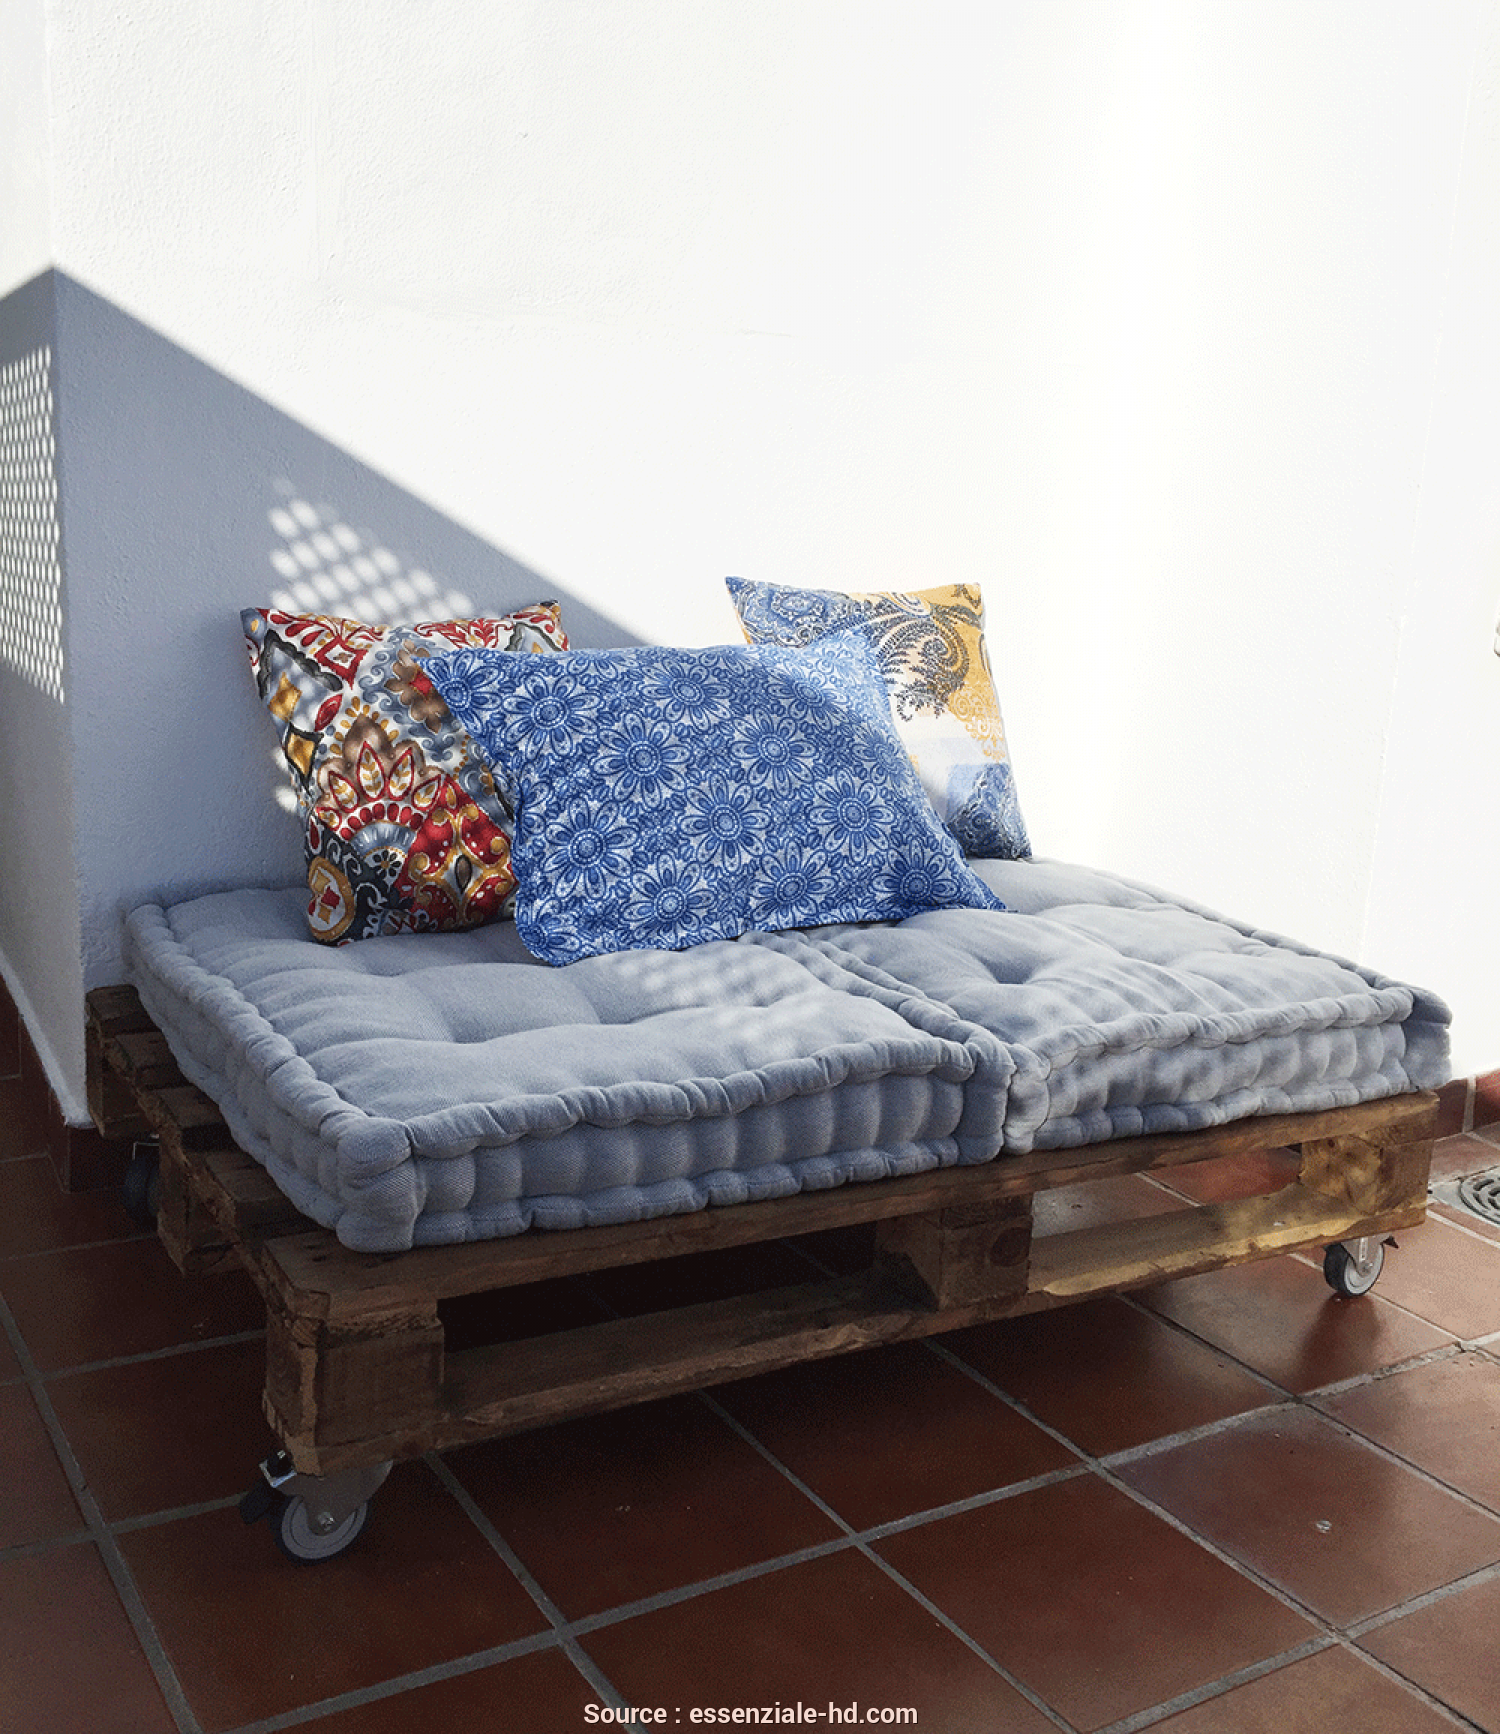 Leroy Merlin Bh Pallet, Bello DIY Project: Pallet Daybed, L